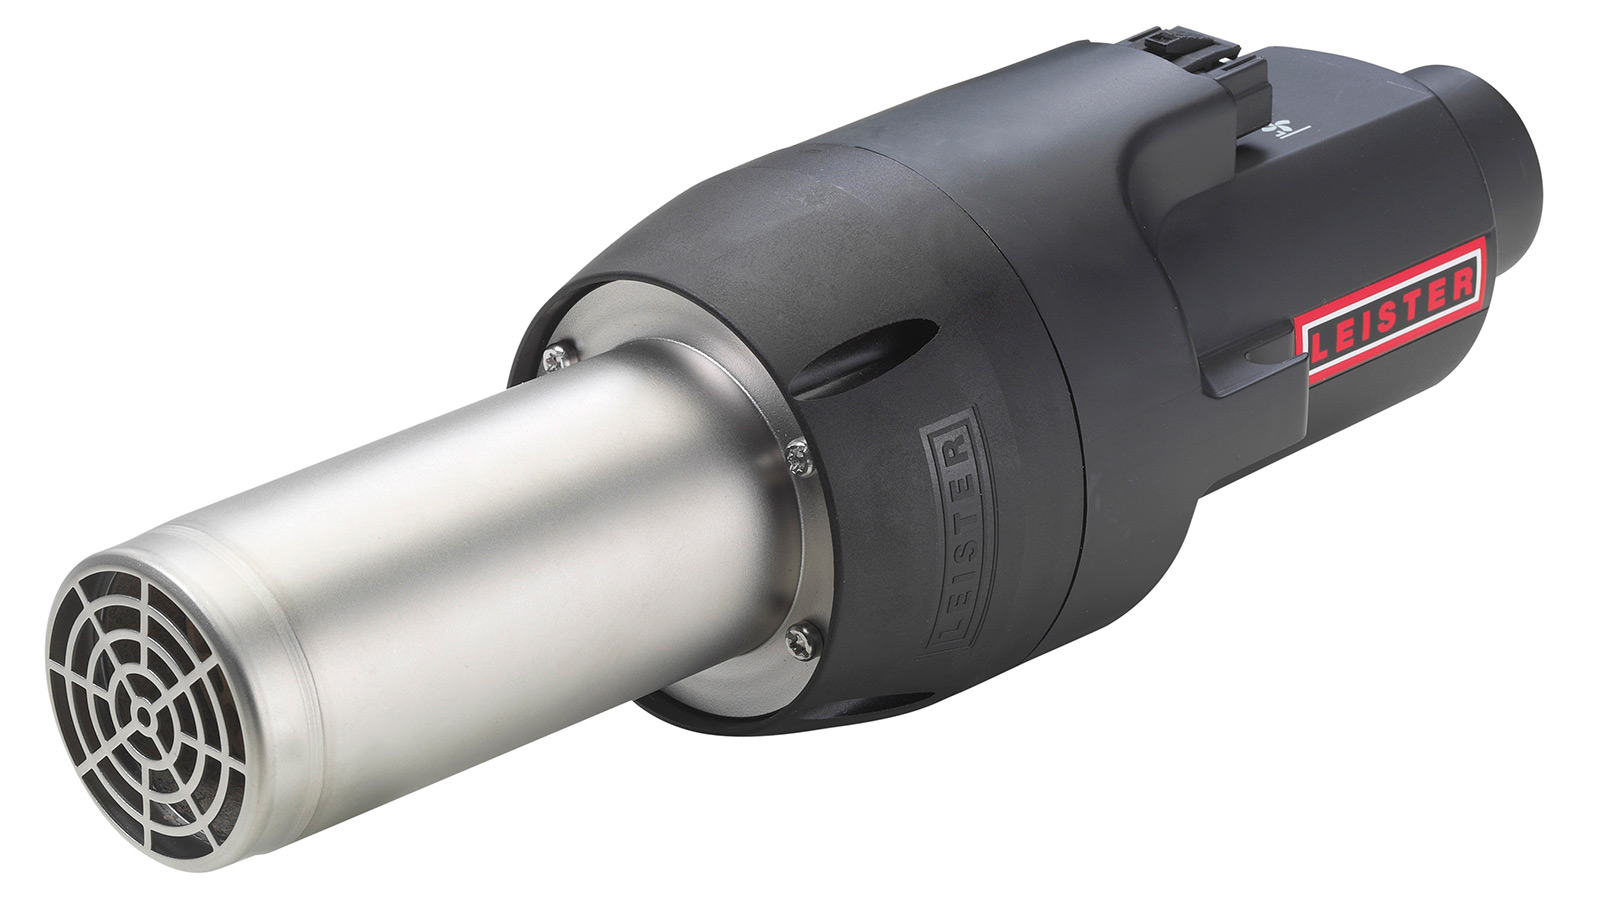 Ignition-tool IGNITER BR 4